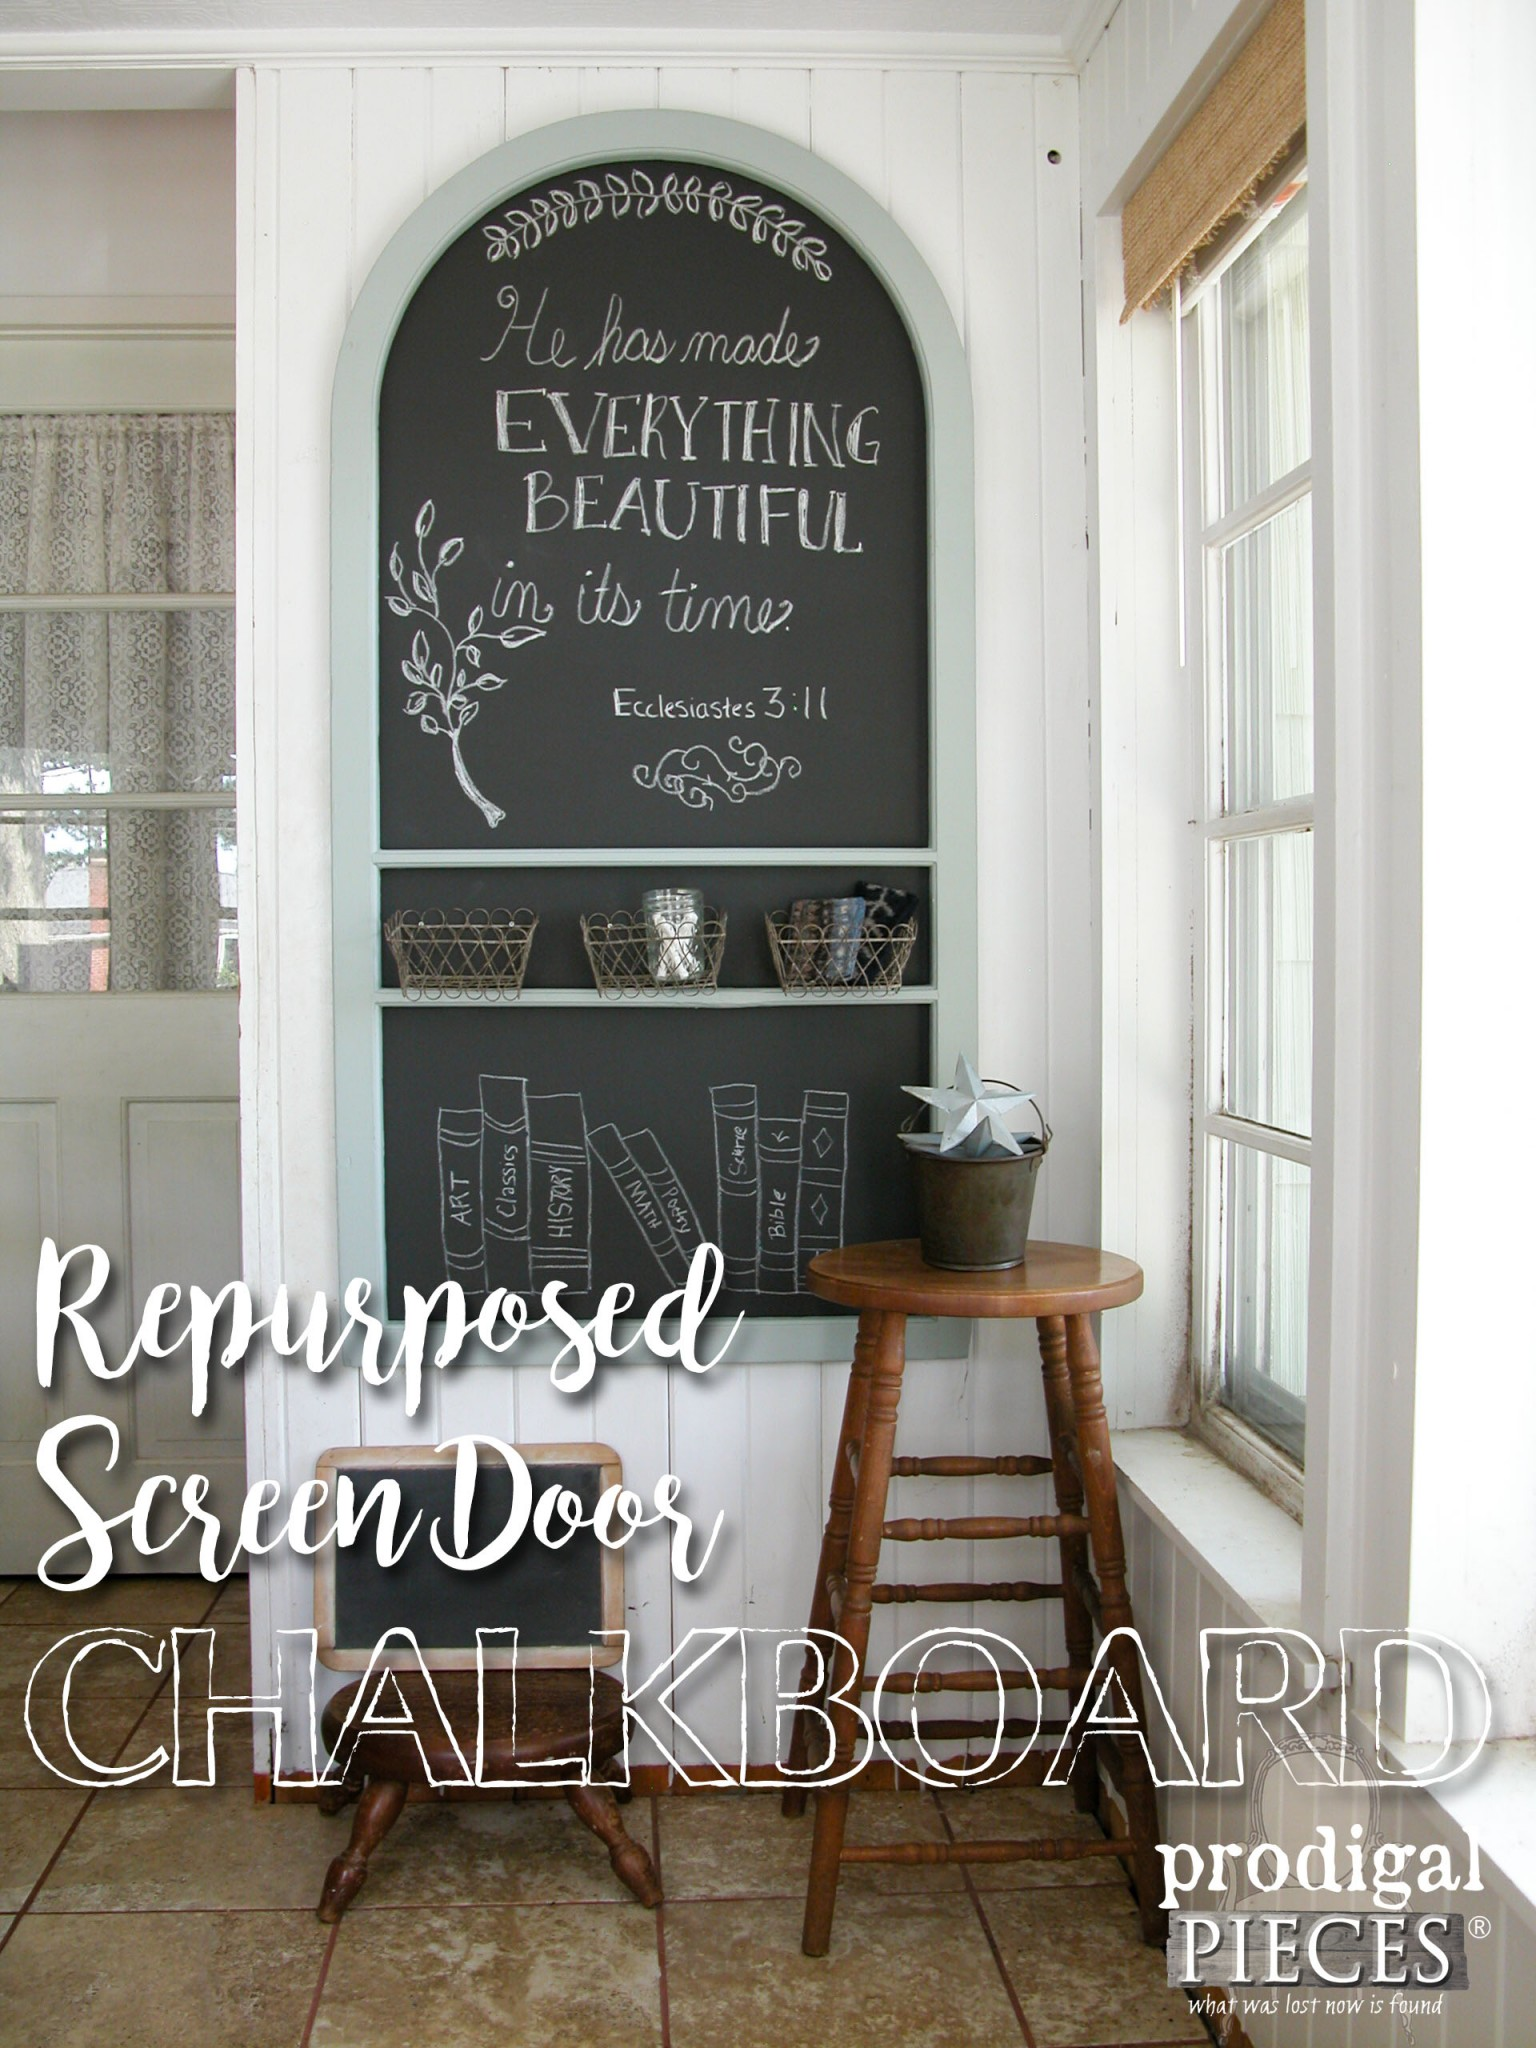 Repurposed Screen Door Turned Chalkboard Wall Art by Prodigal Pieces | www.prodigalpieces.com